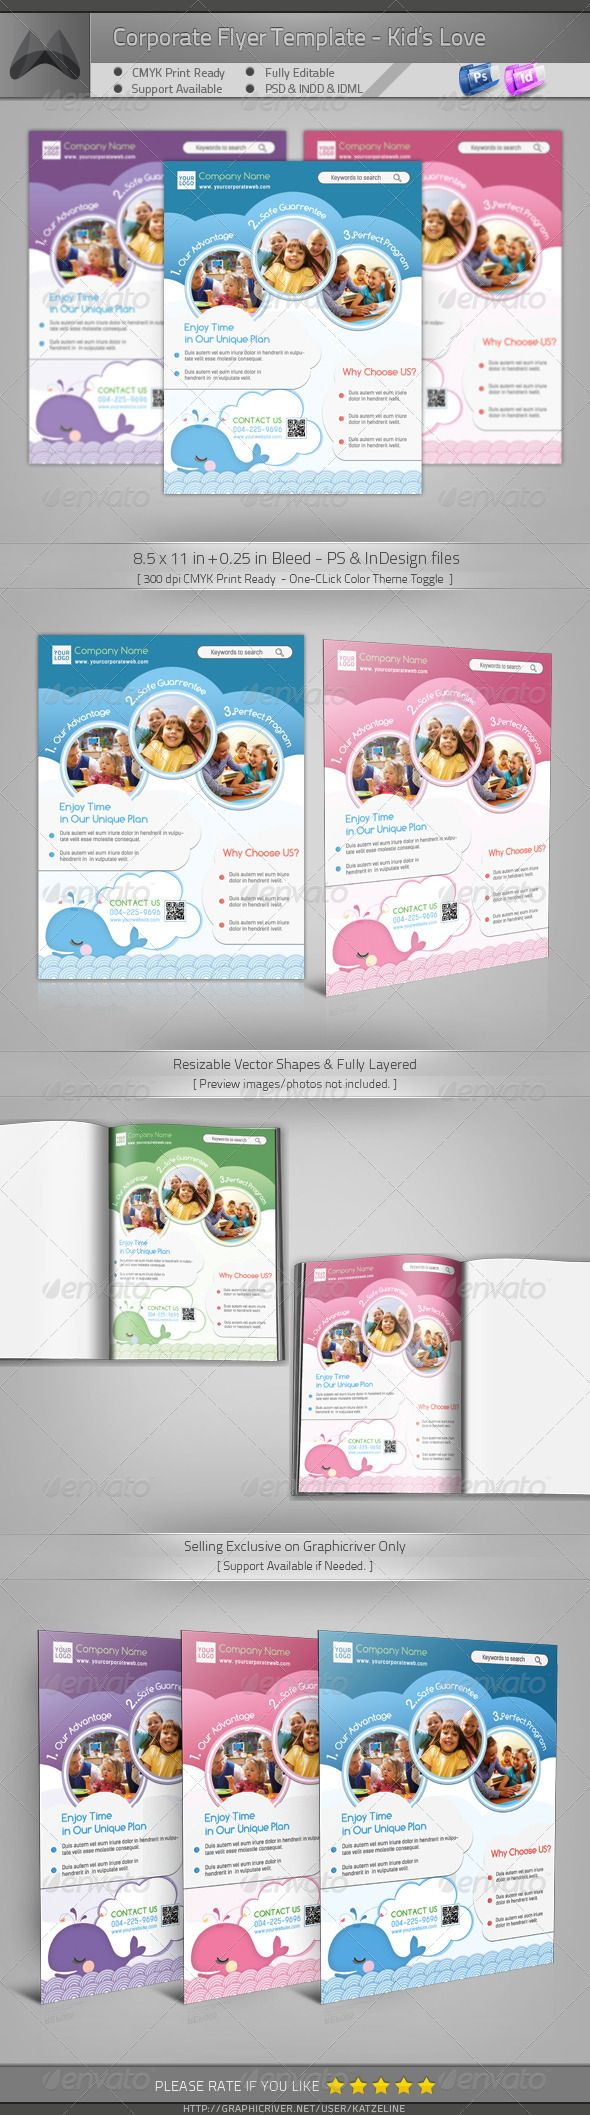 Corporate flyer kid 39 s love vector shapes and adobe for Adobe photoshop brochure templates